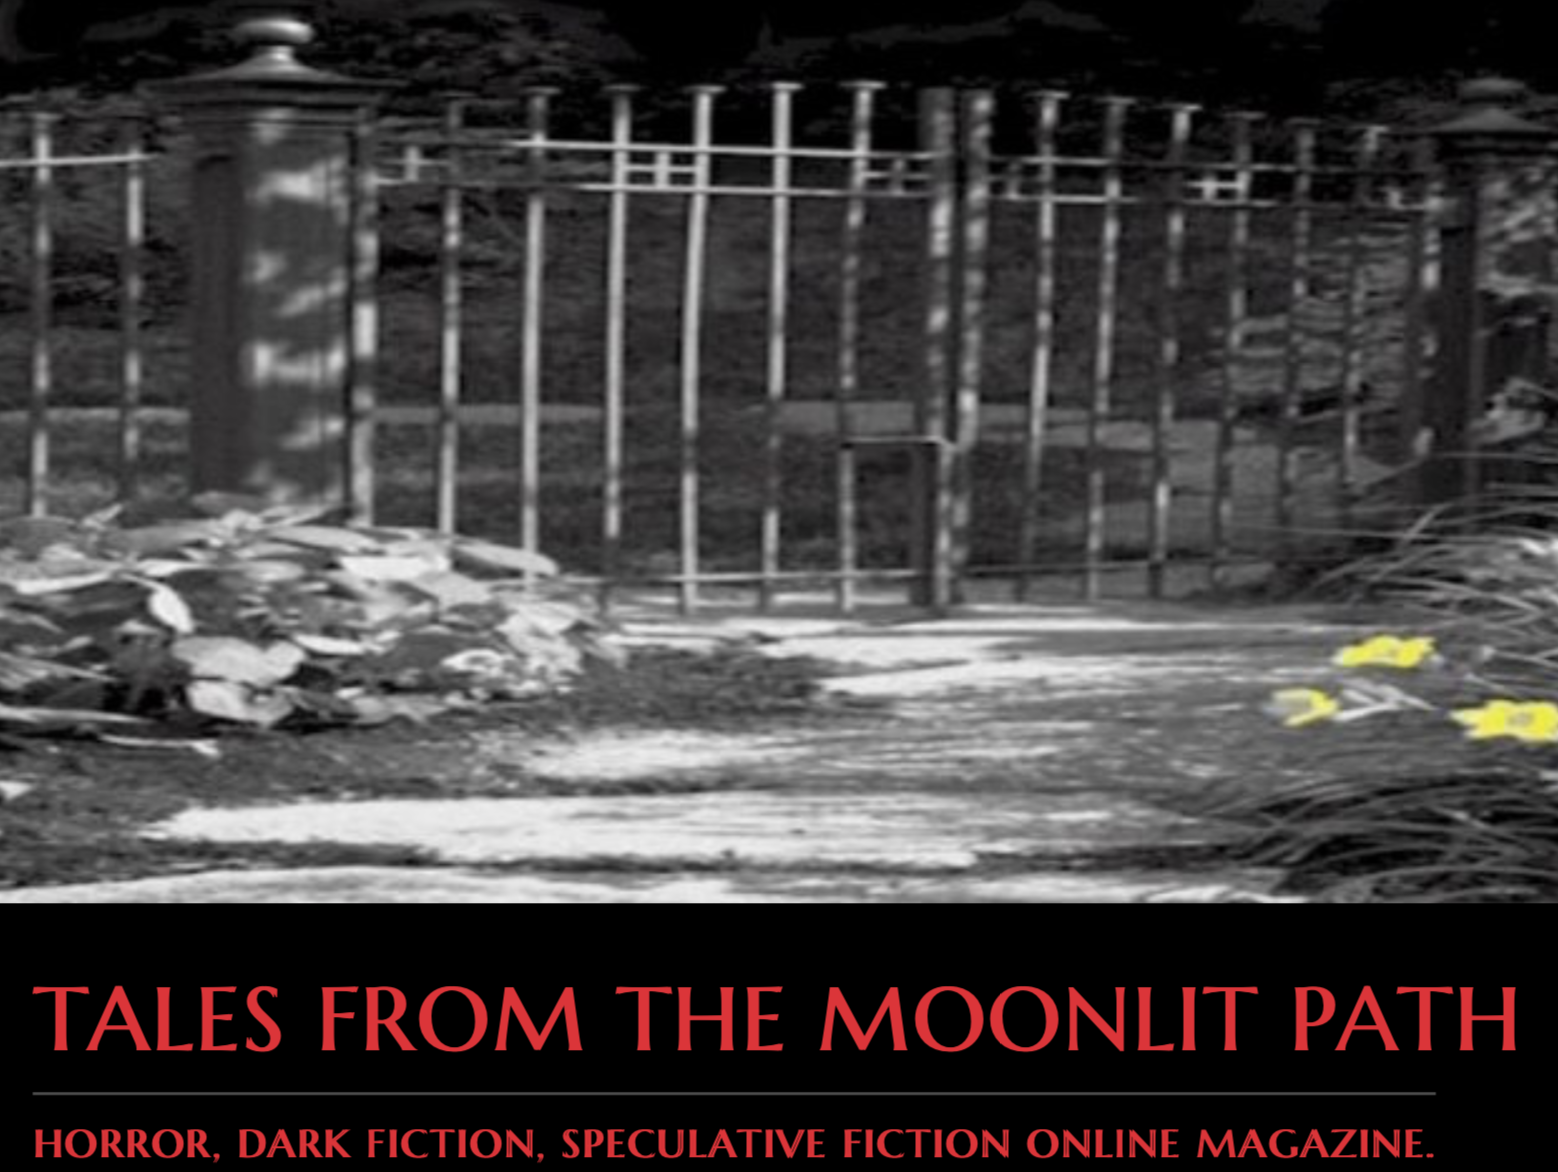 Tales from the Moonlit Path